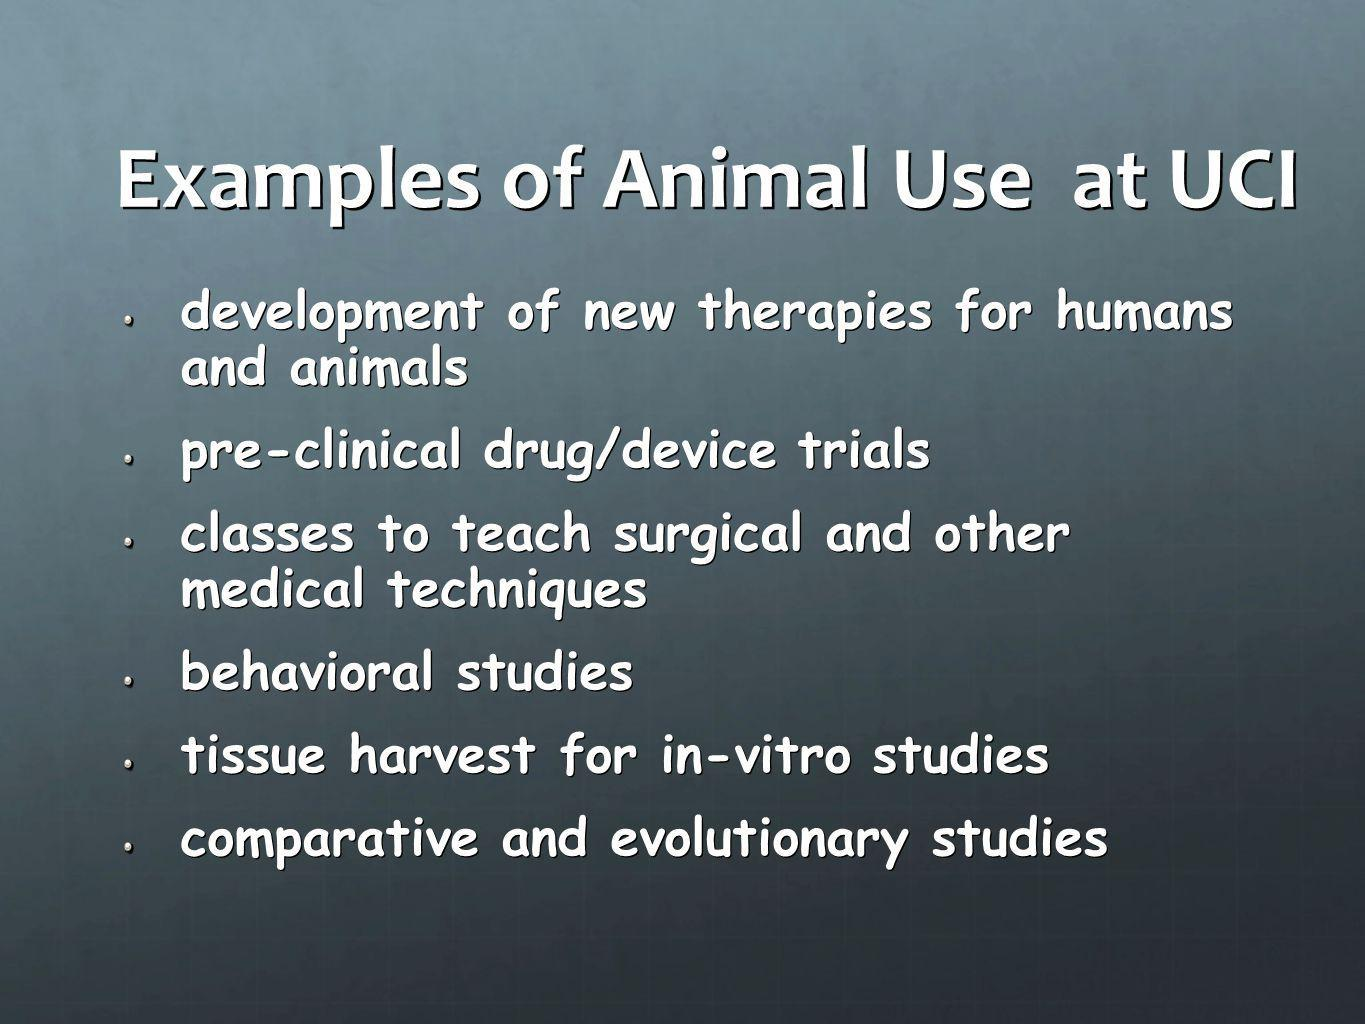 Examples of Animal Use at UCI development of new therapies for humans and animals pre-clinical drug/device trials classes to teach surgical and other